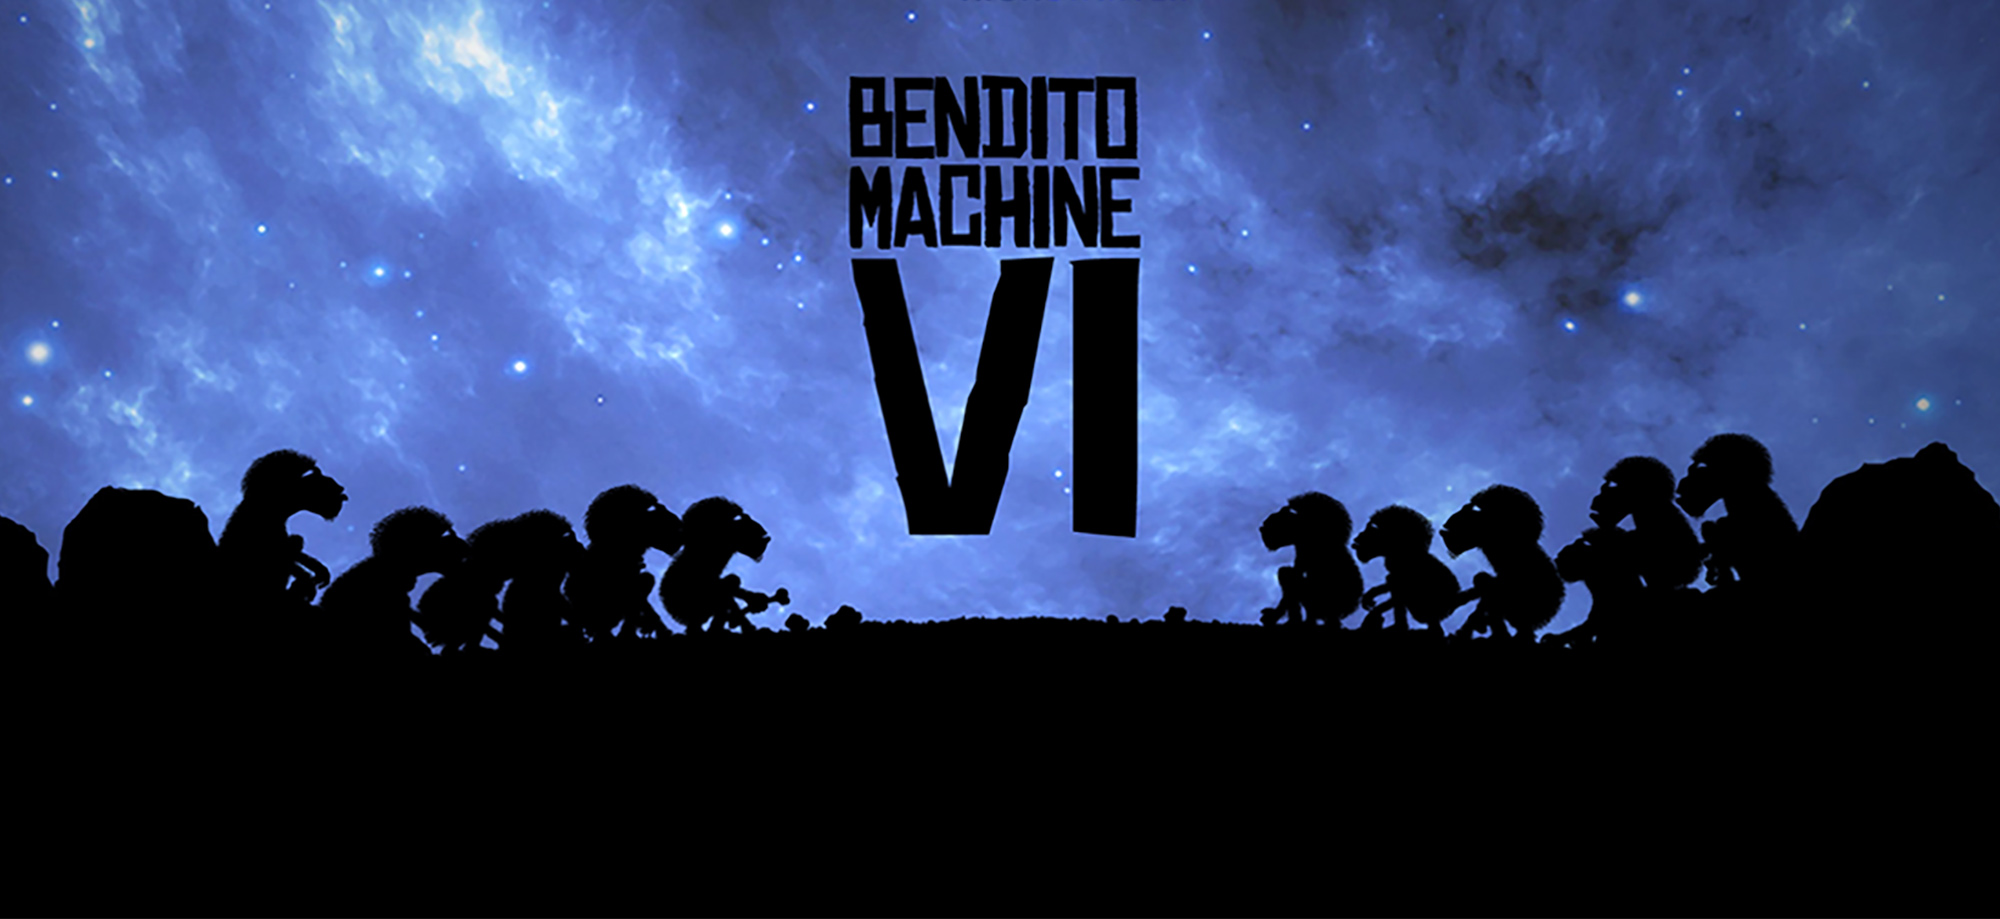 bendito_machine_6_02